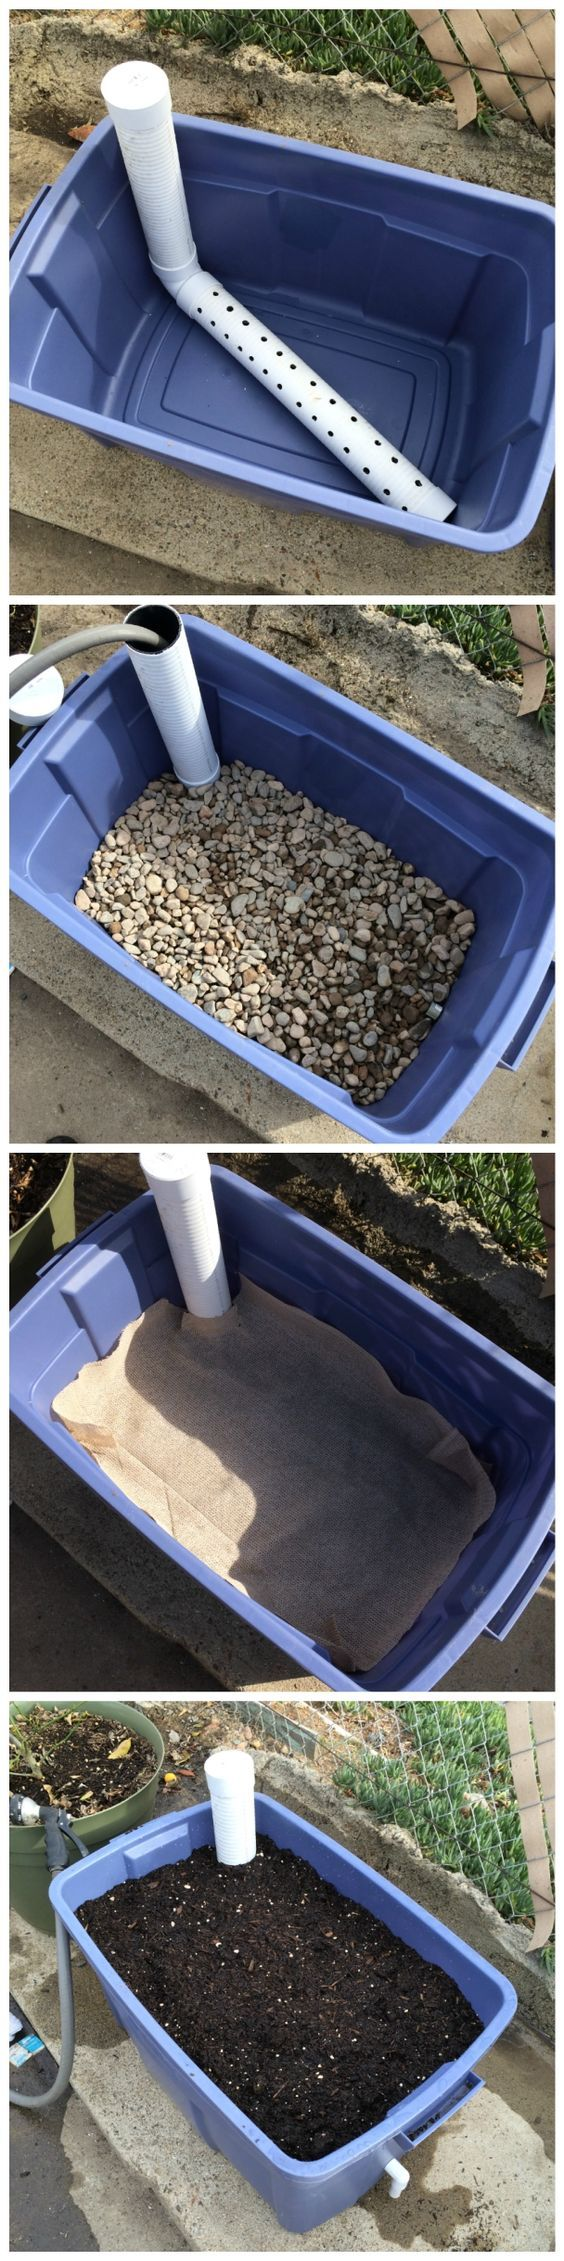 DIY Wicking Bed Container Gardening. This is a great idea to ensure less and adequate water for your plants.